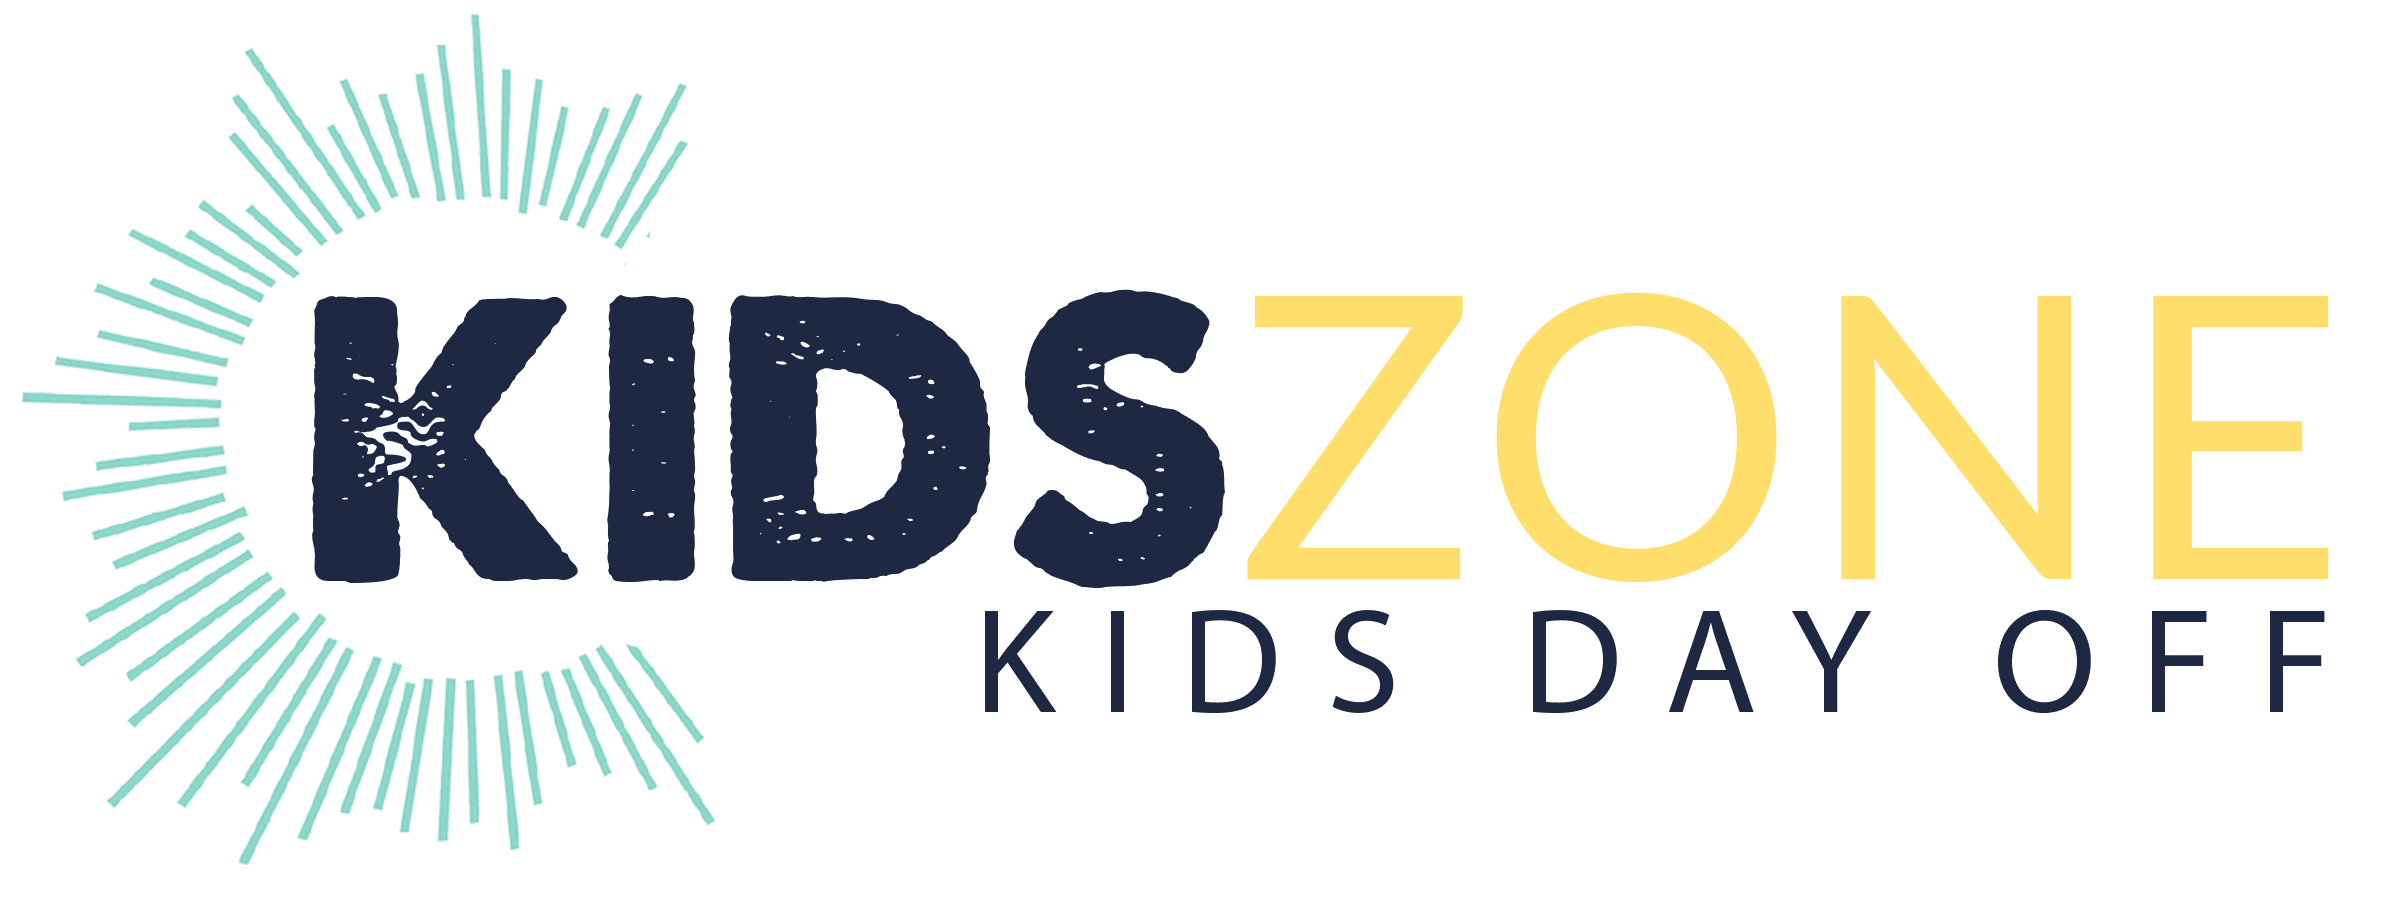 Kids Zone day off logo